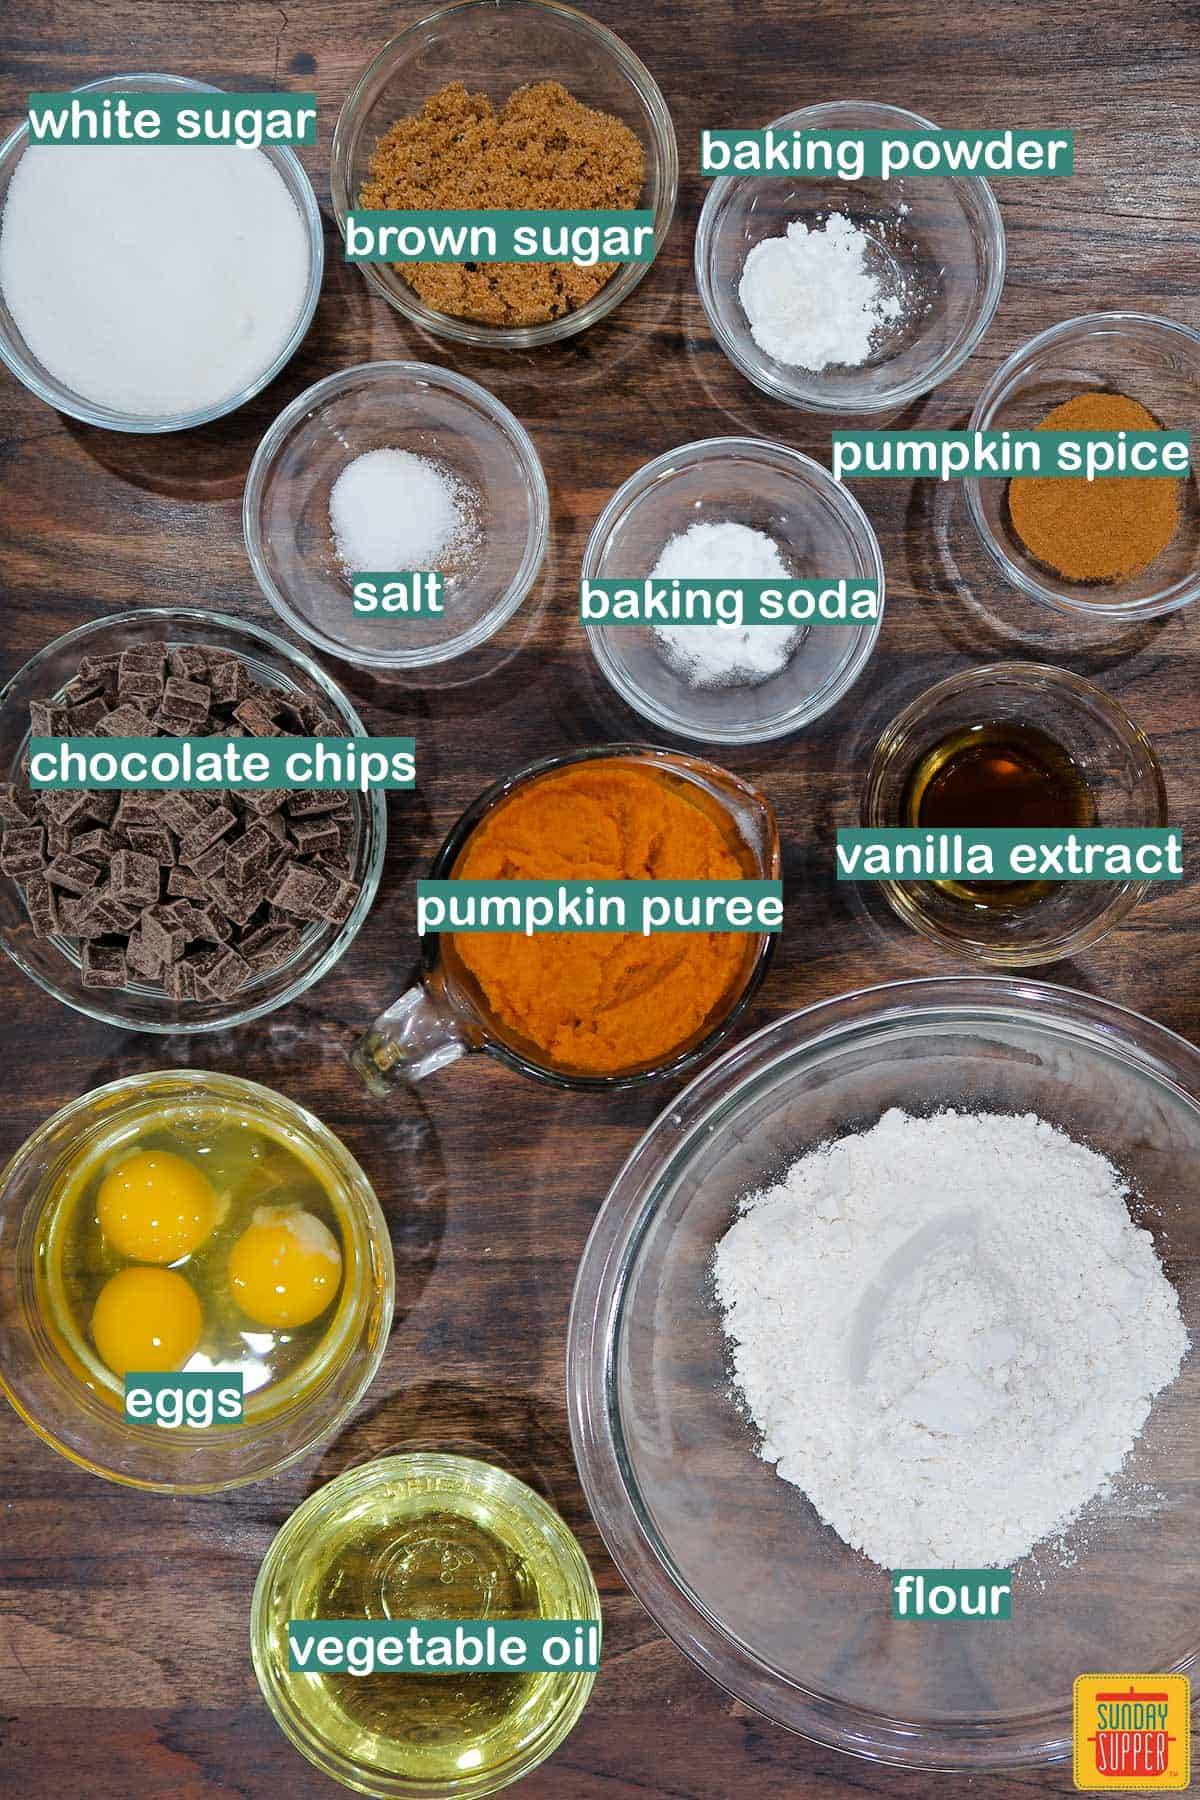 Ingredients to make Instant Pot Pumpkin Chocolate Chip Bread laid out on a table with labels